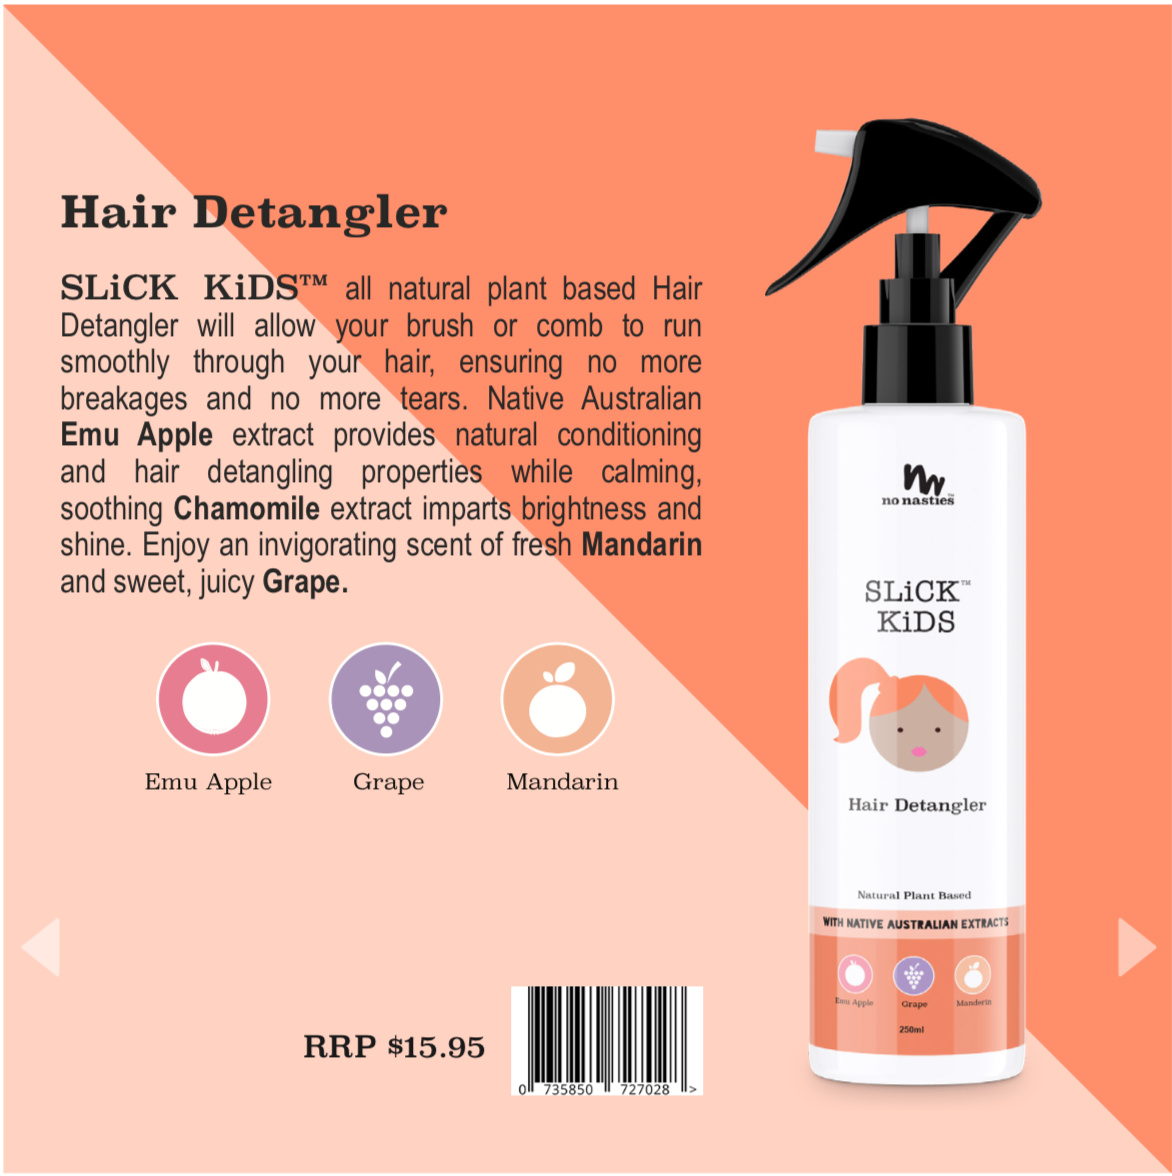 Natural Plant Based Hair Detangler